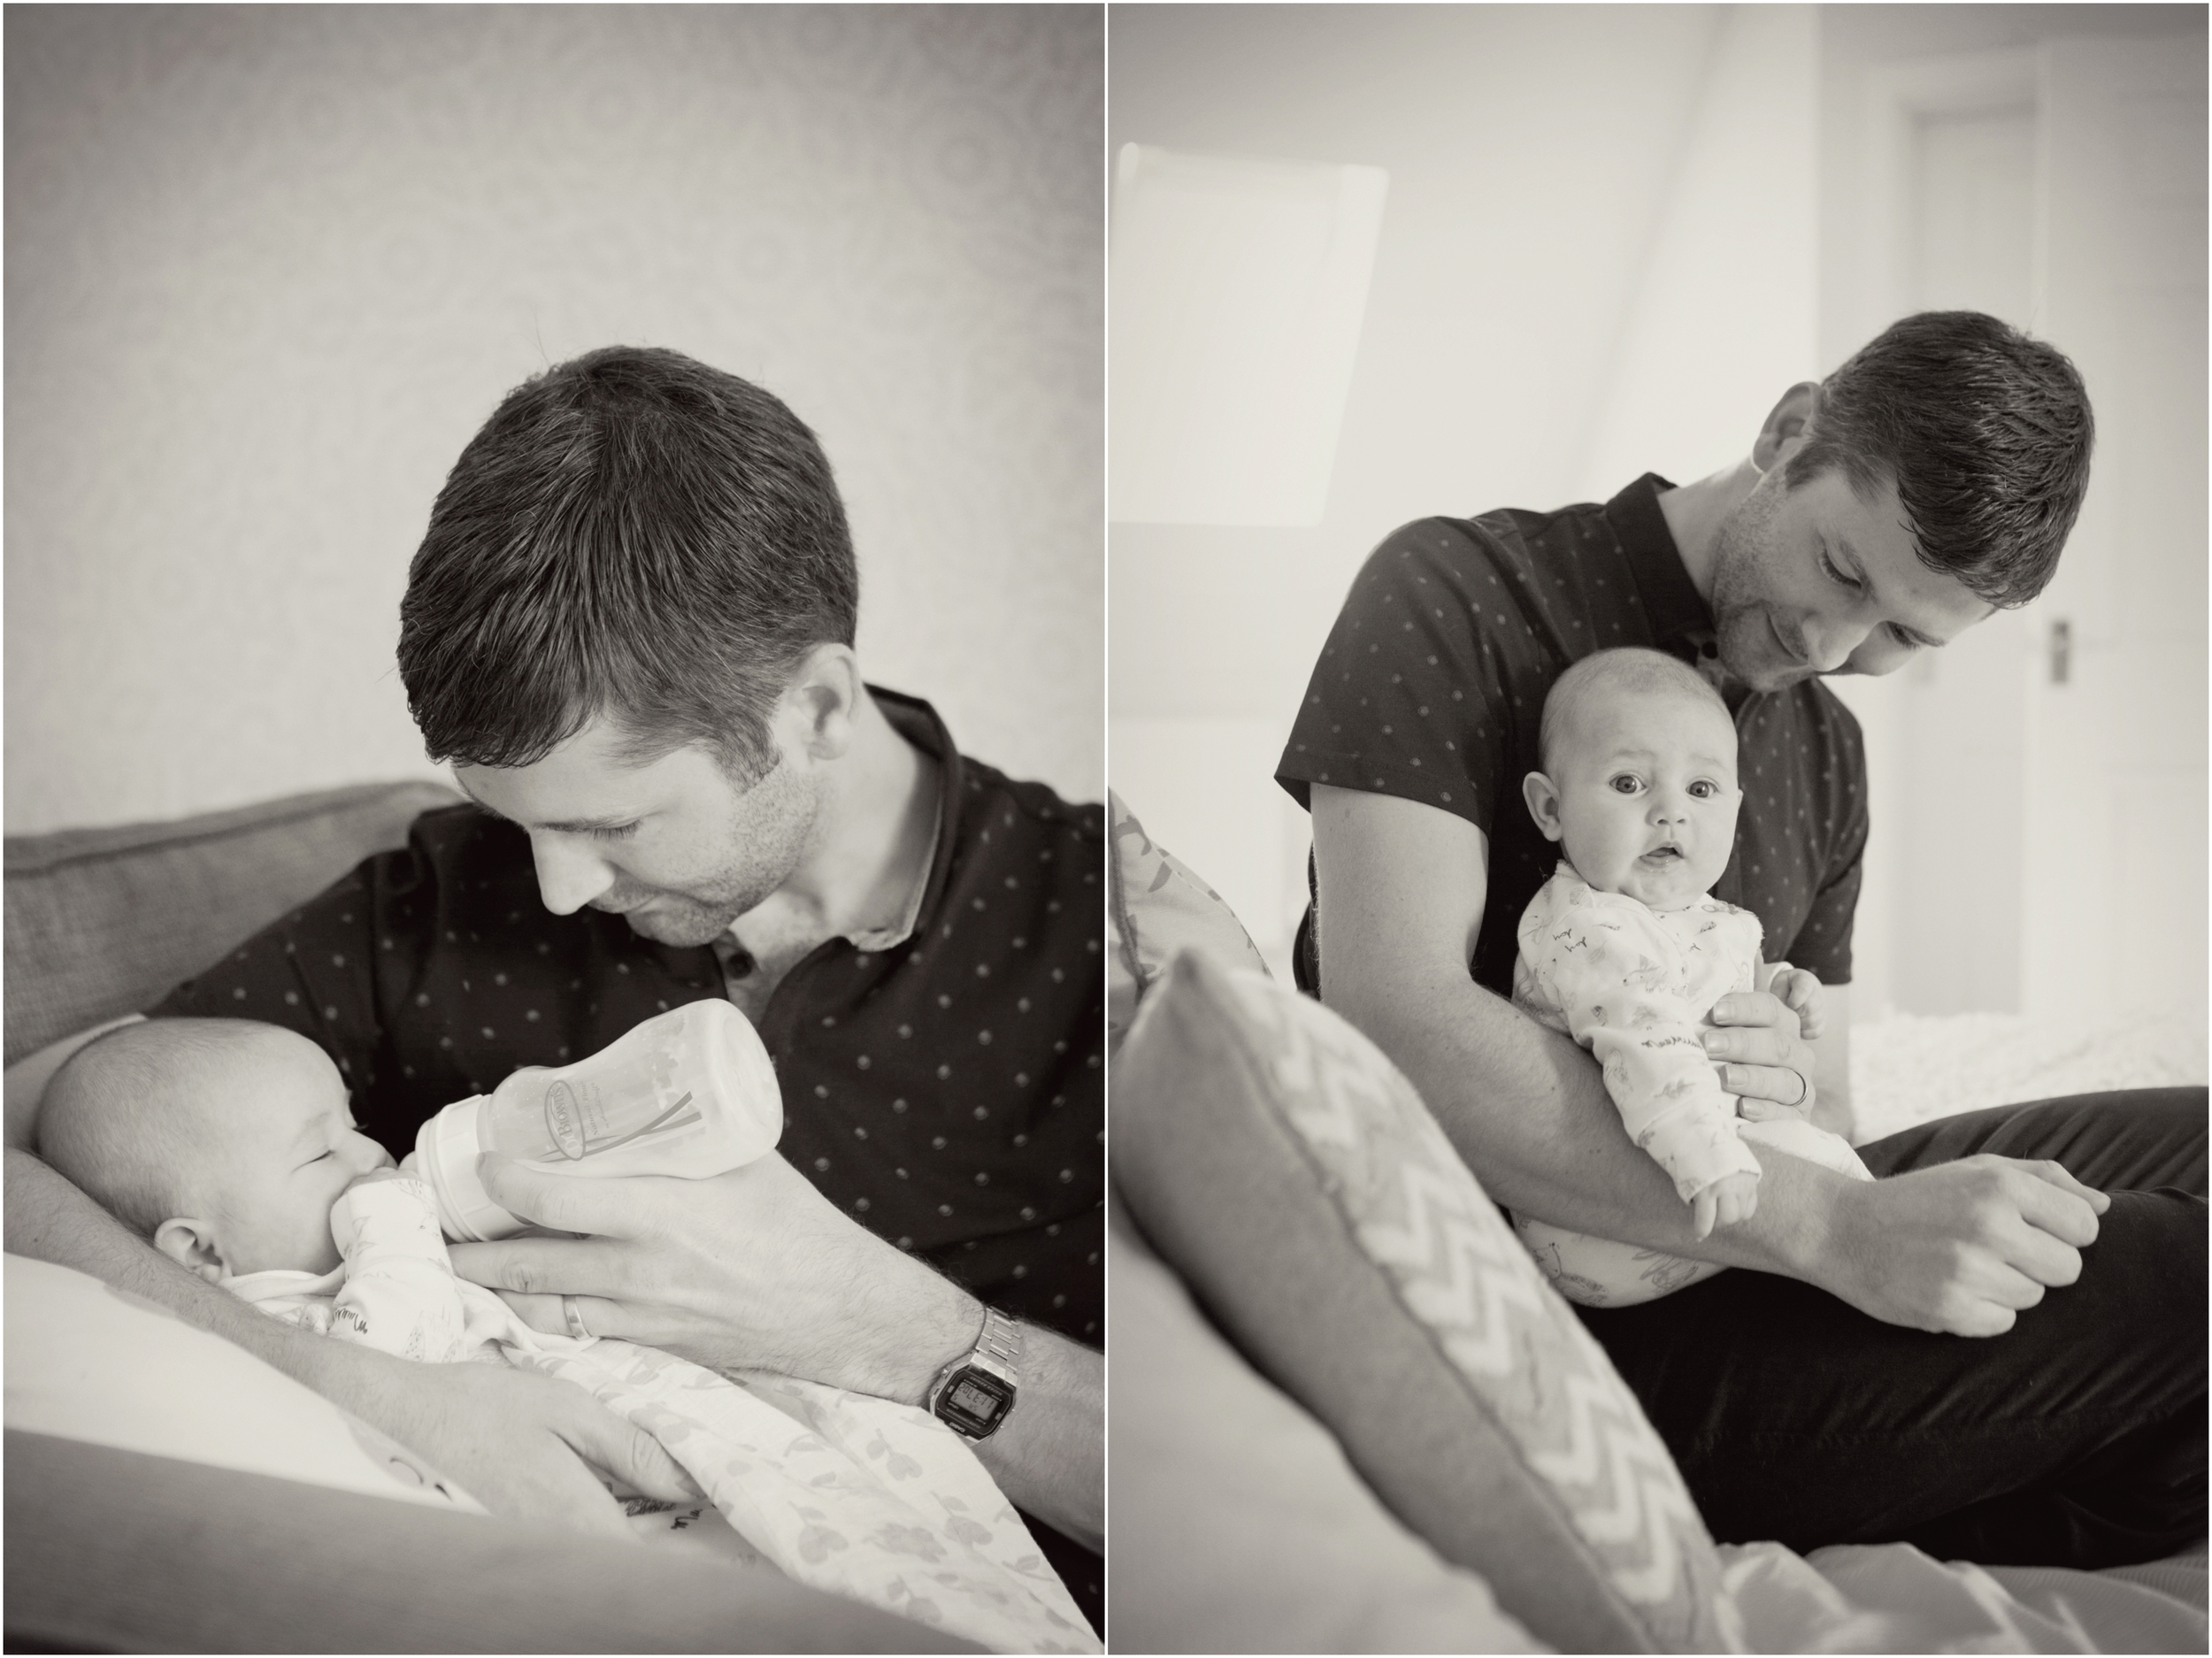 Sophie Evans Photography, Warwickshire family photographer, lifestyle babyshoot at home (1).jpg